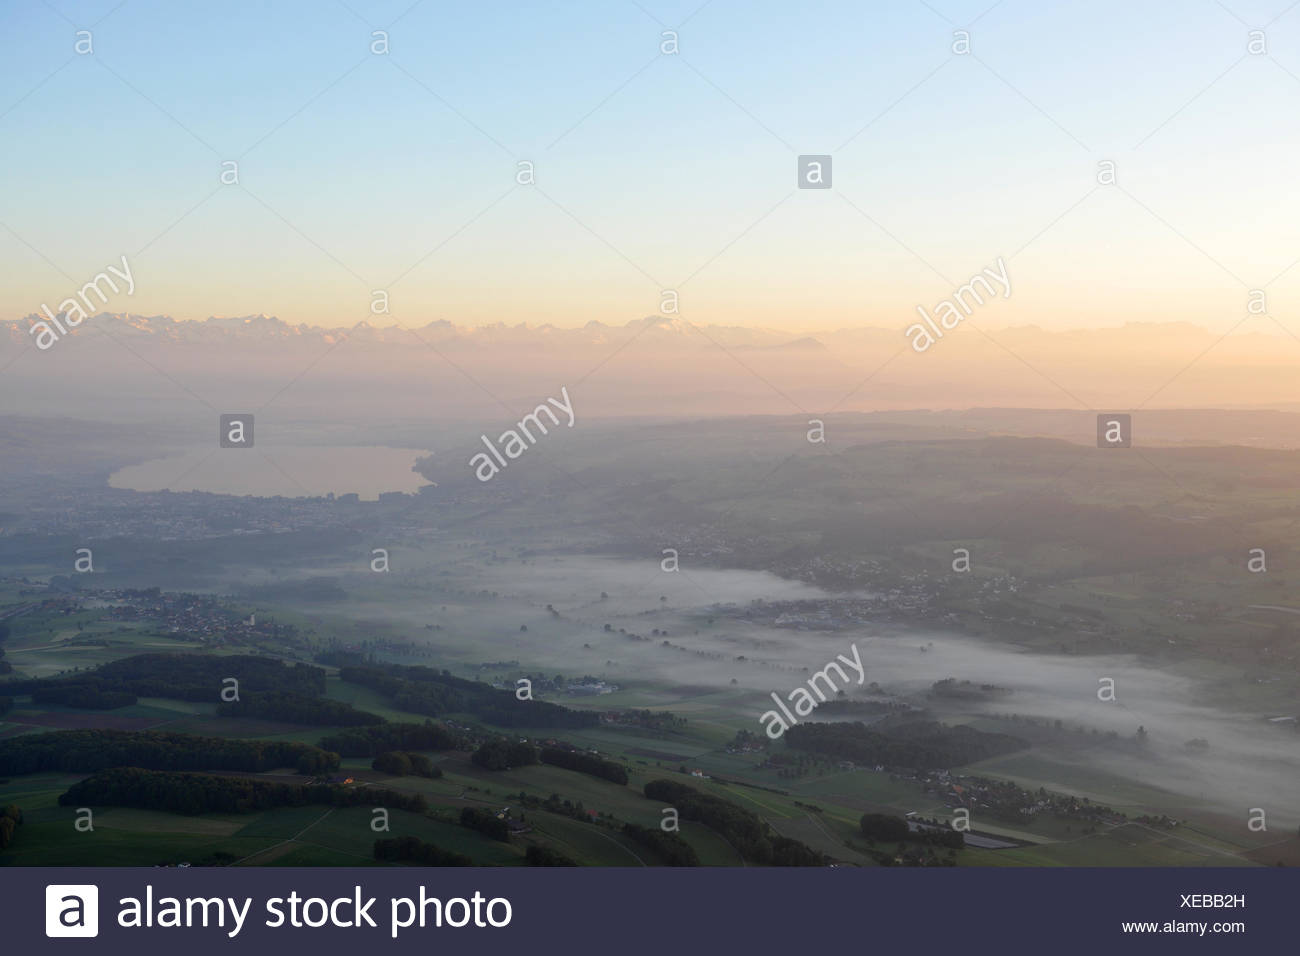 arial picture of hot air baloon - Stock Image